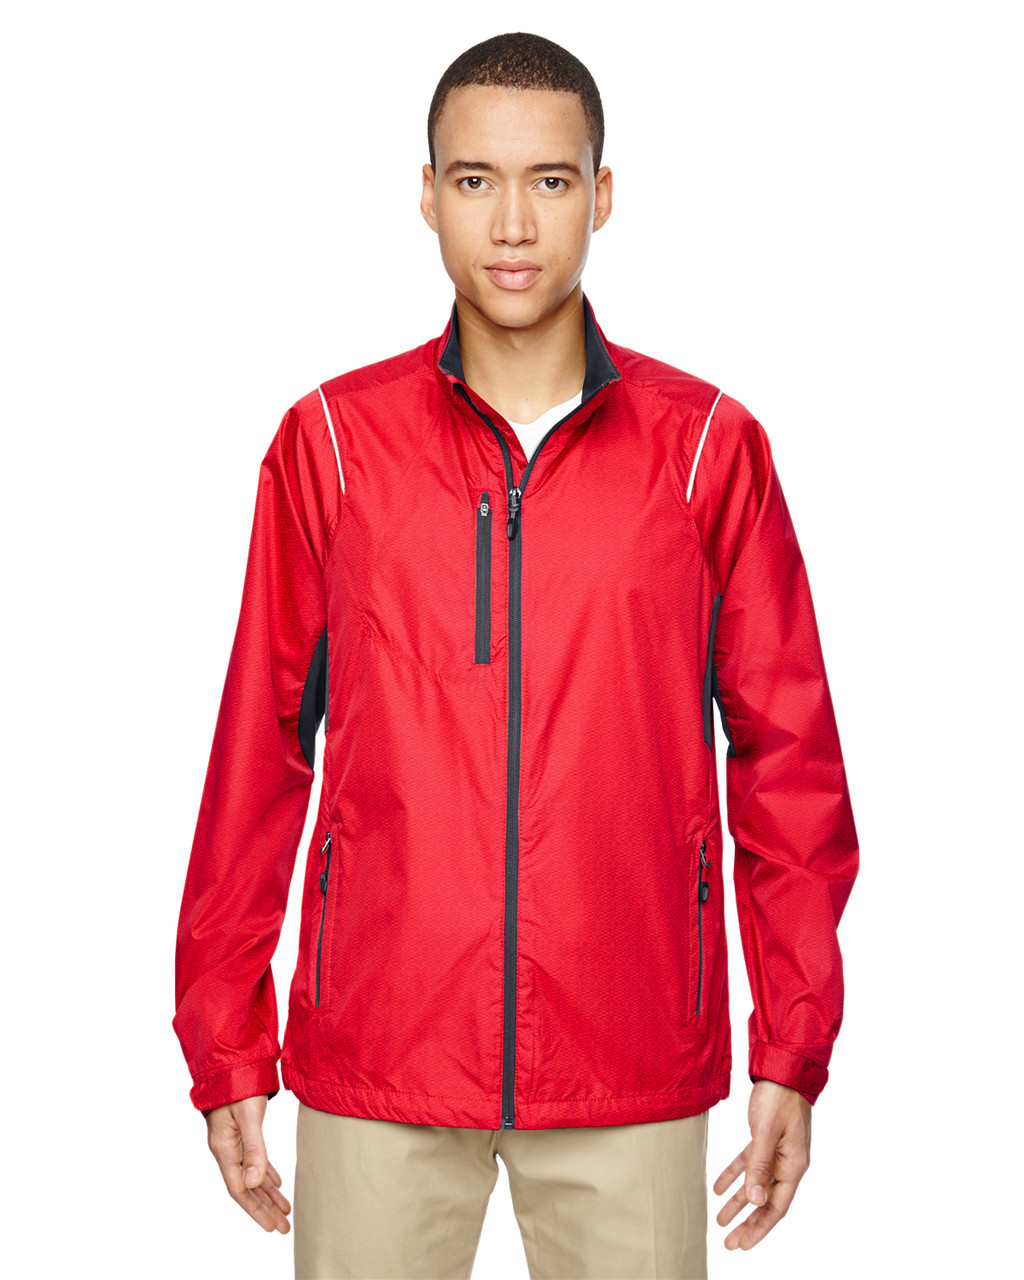 Flame Red - 88200 North End Sustain Lightweight Recycled Polyester Dobby Jacket with Print | Blankclothing.ca